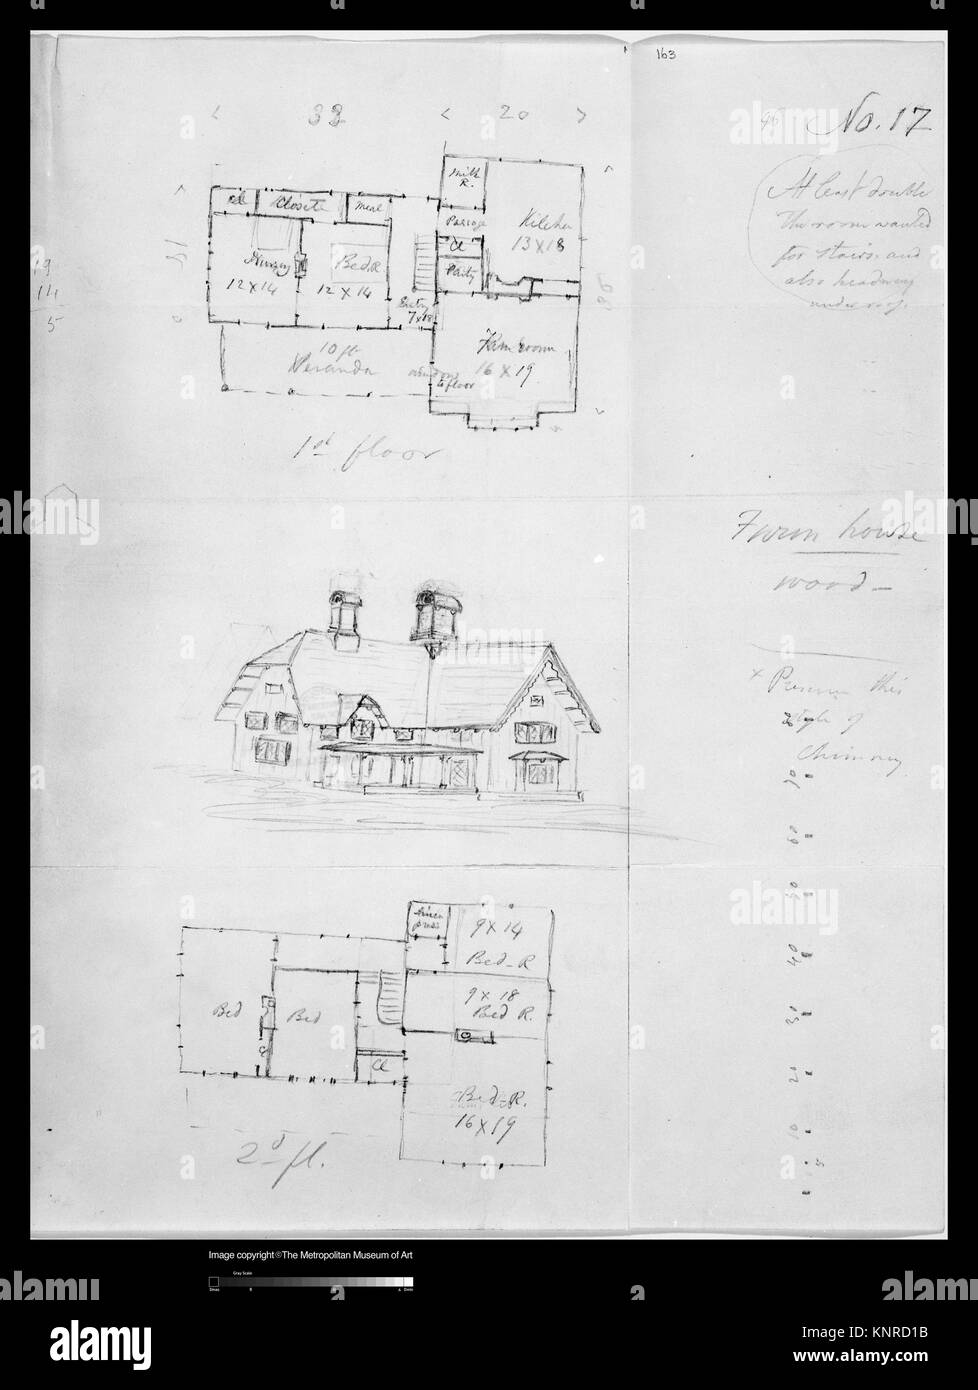 Design for Bracketed American Farm House, Design XVII from The Architecture of Country Houses. Artist: Alexander - Stock Image